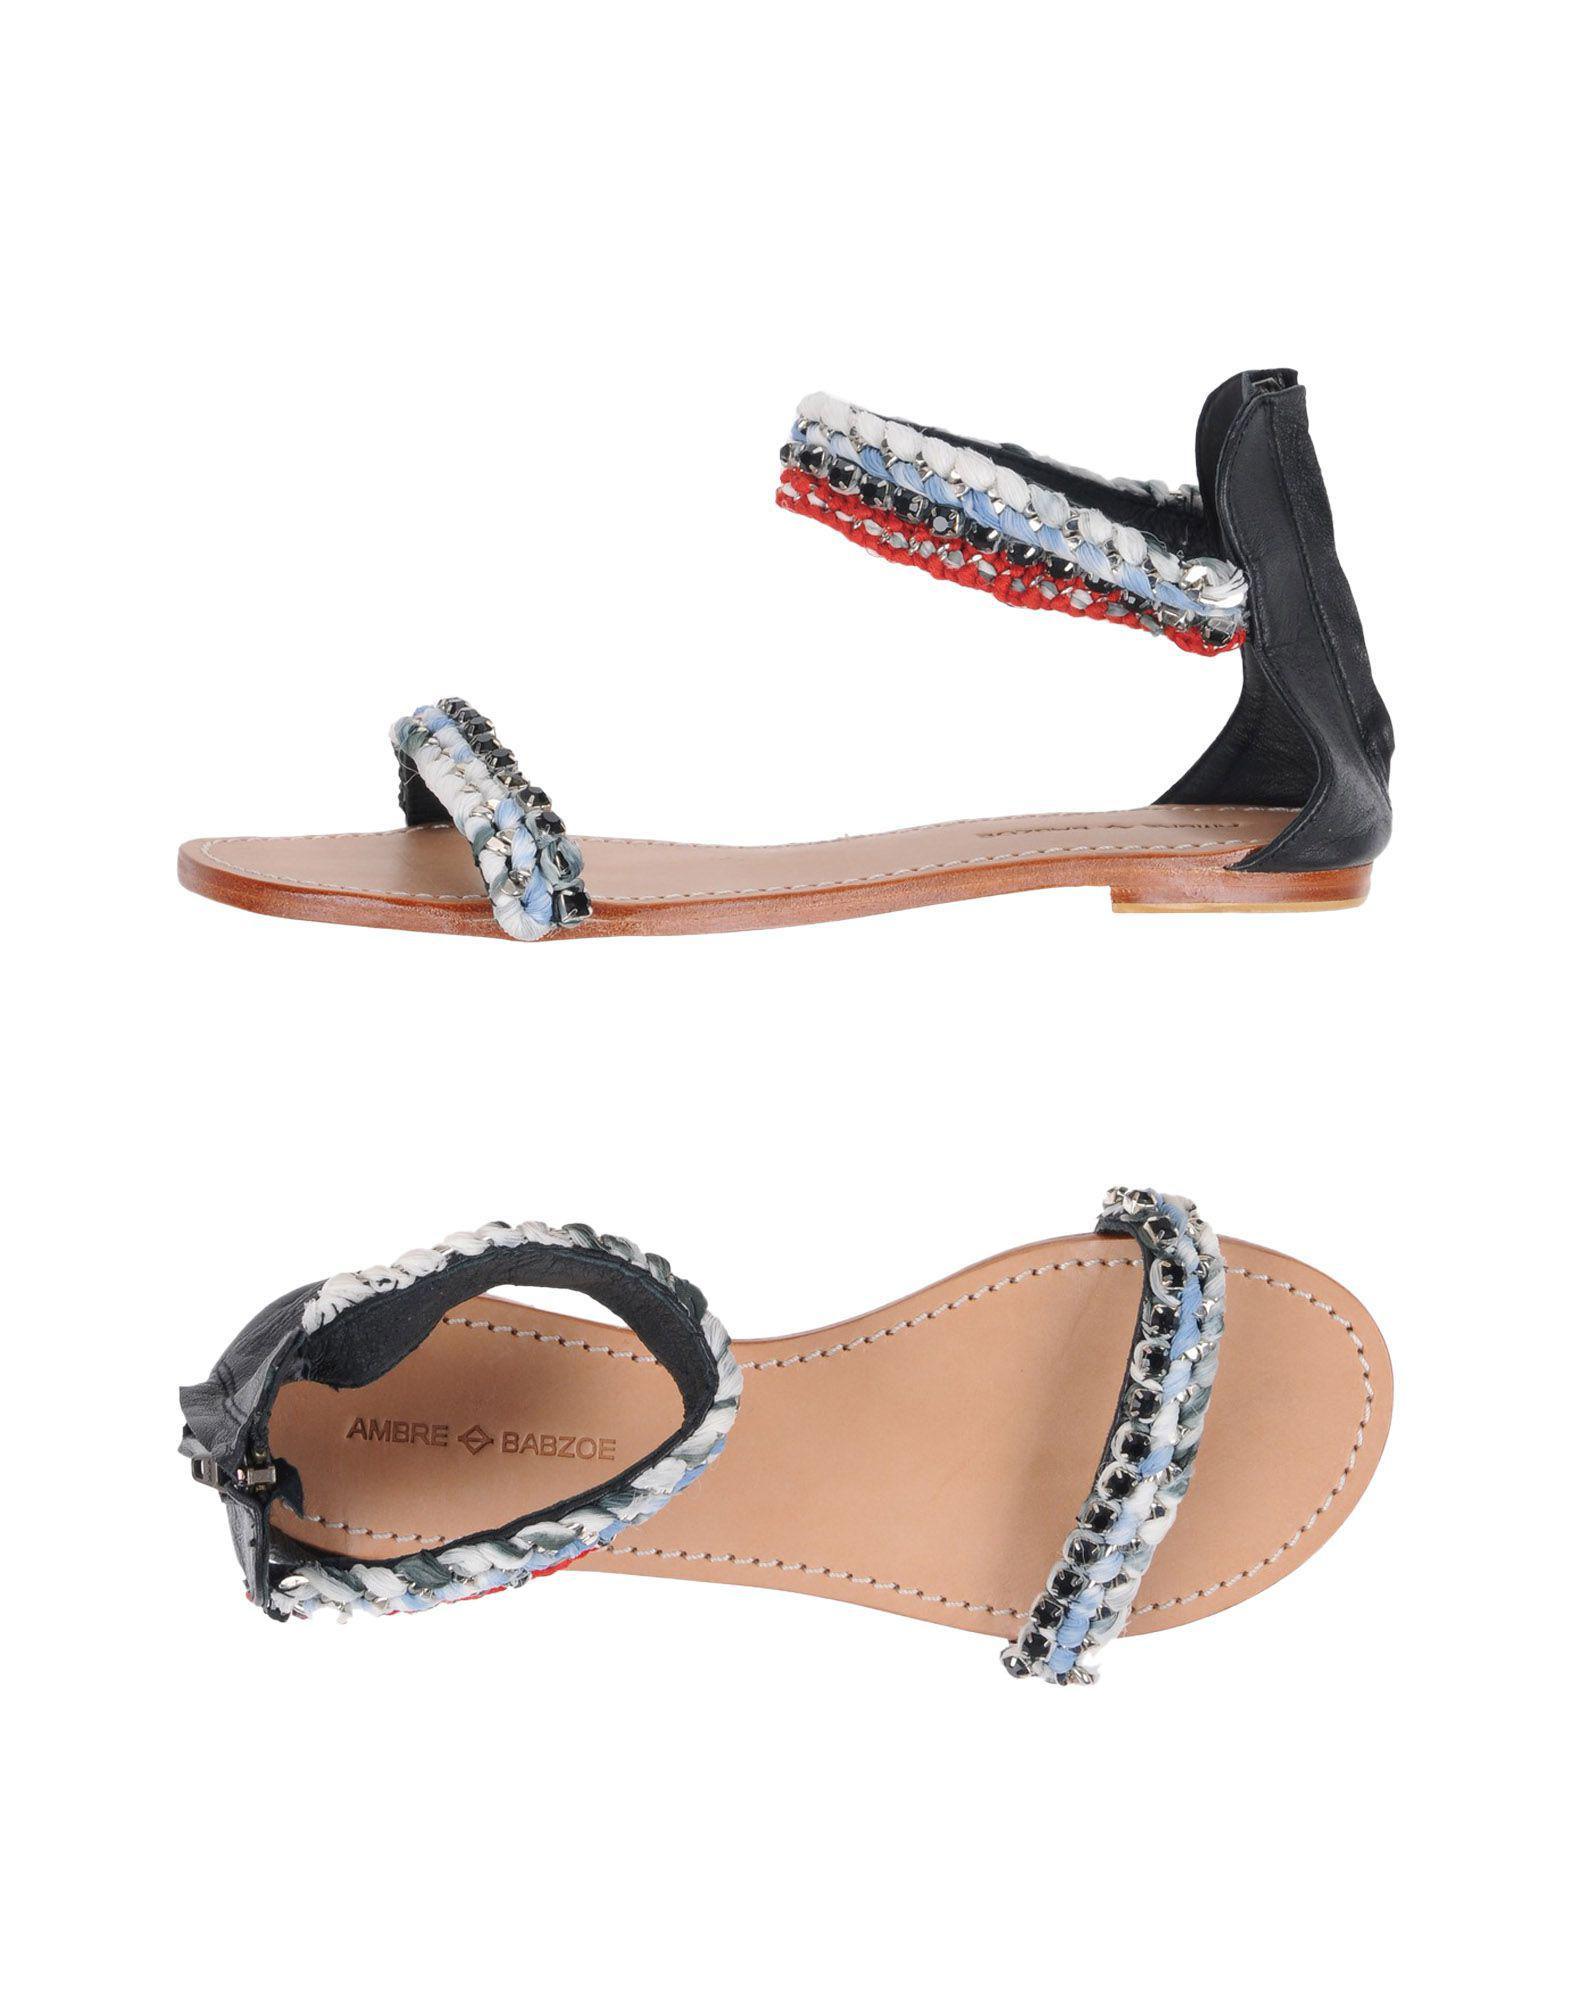 Clearance FOOTWEAR - Sandals Ambre Babzoe Latest Cheap Sale Latest Collections Buy Cheap Cost Ebay Cheap Price MdCdV